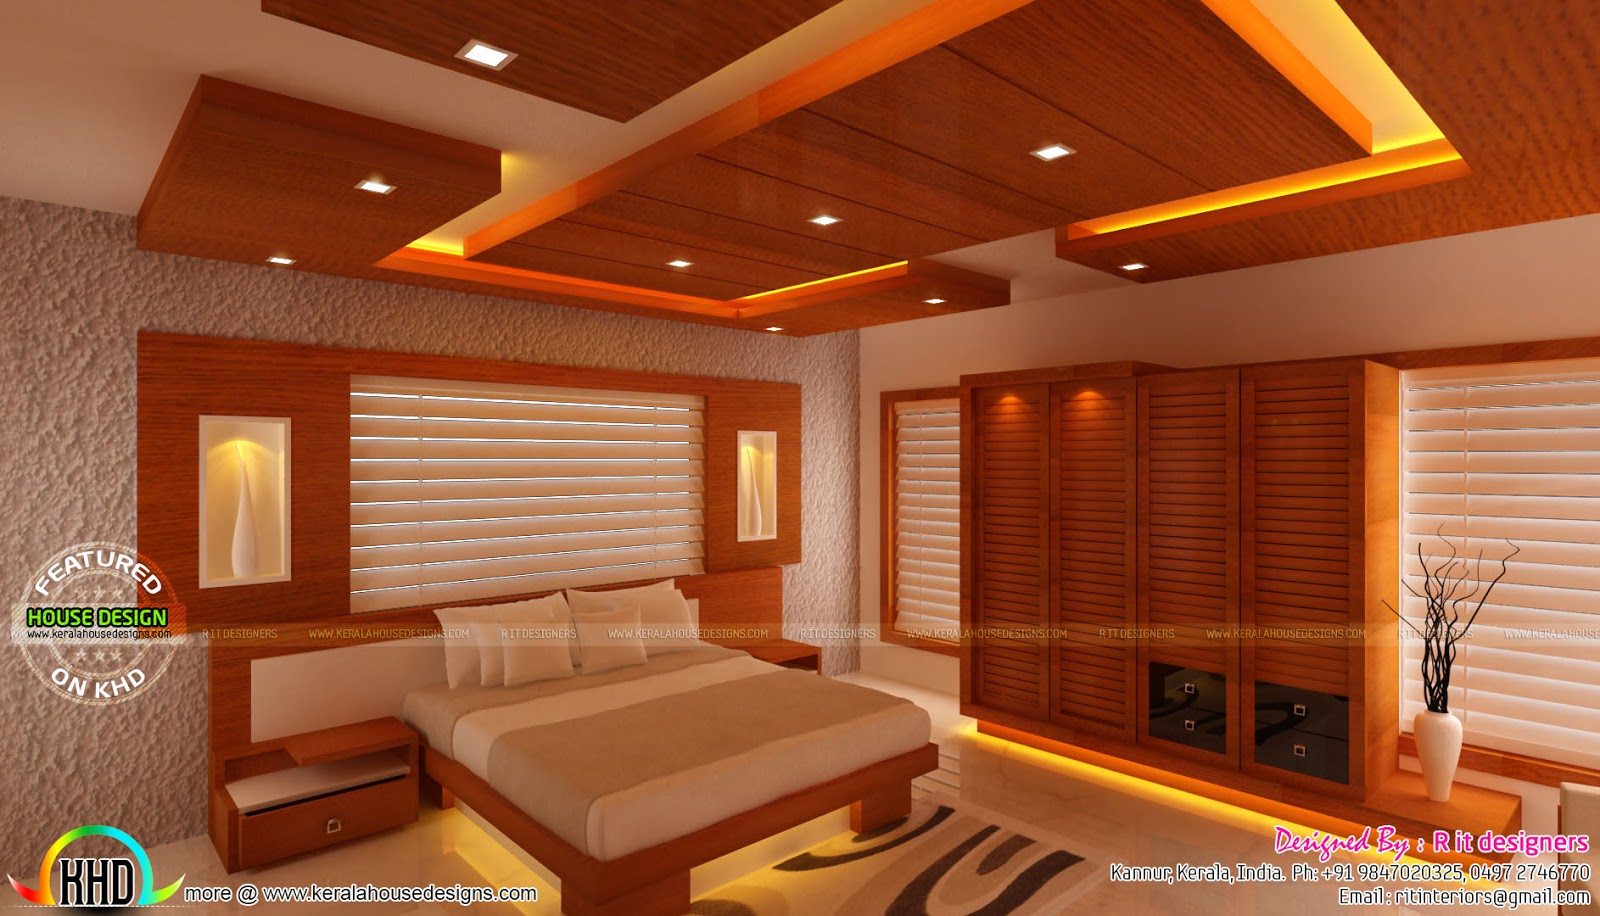 Wooden finish interior designs kerala home design and for Kerala interior designs